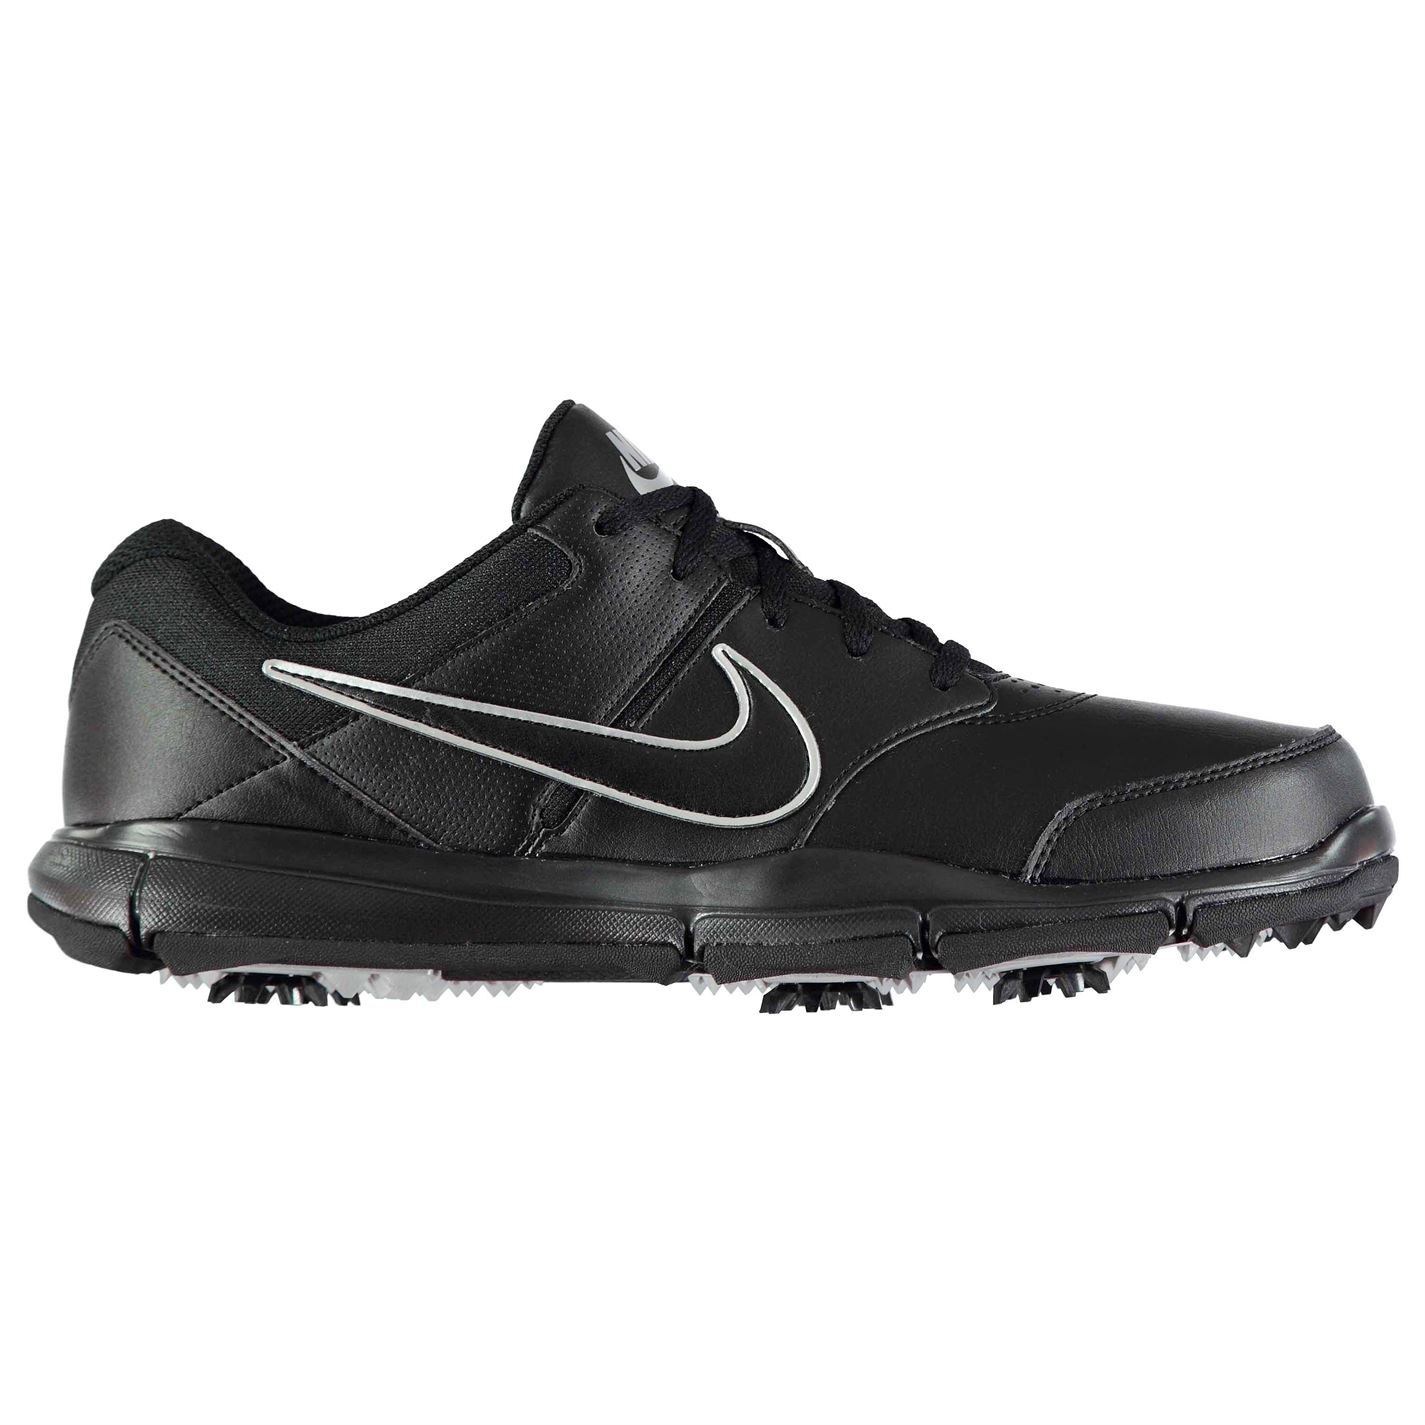 Nike-Durasport-4-Spiked-Golf-Shoes-Mens-Spikes-Footwear thumbnail 6